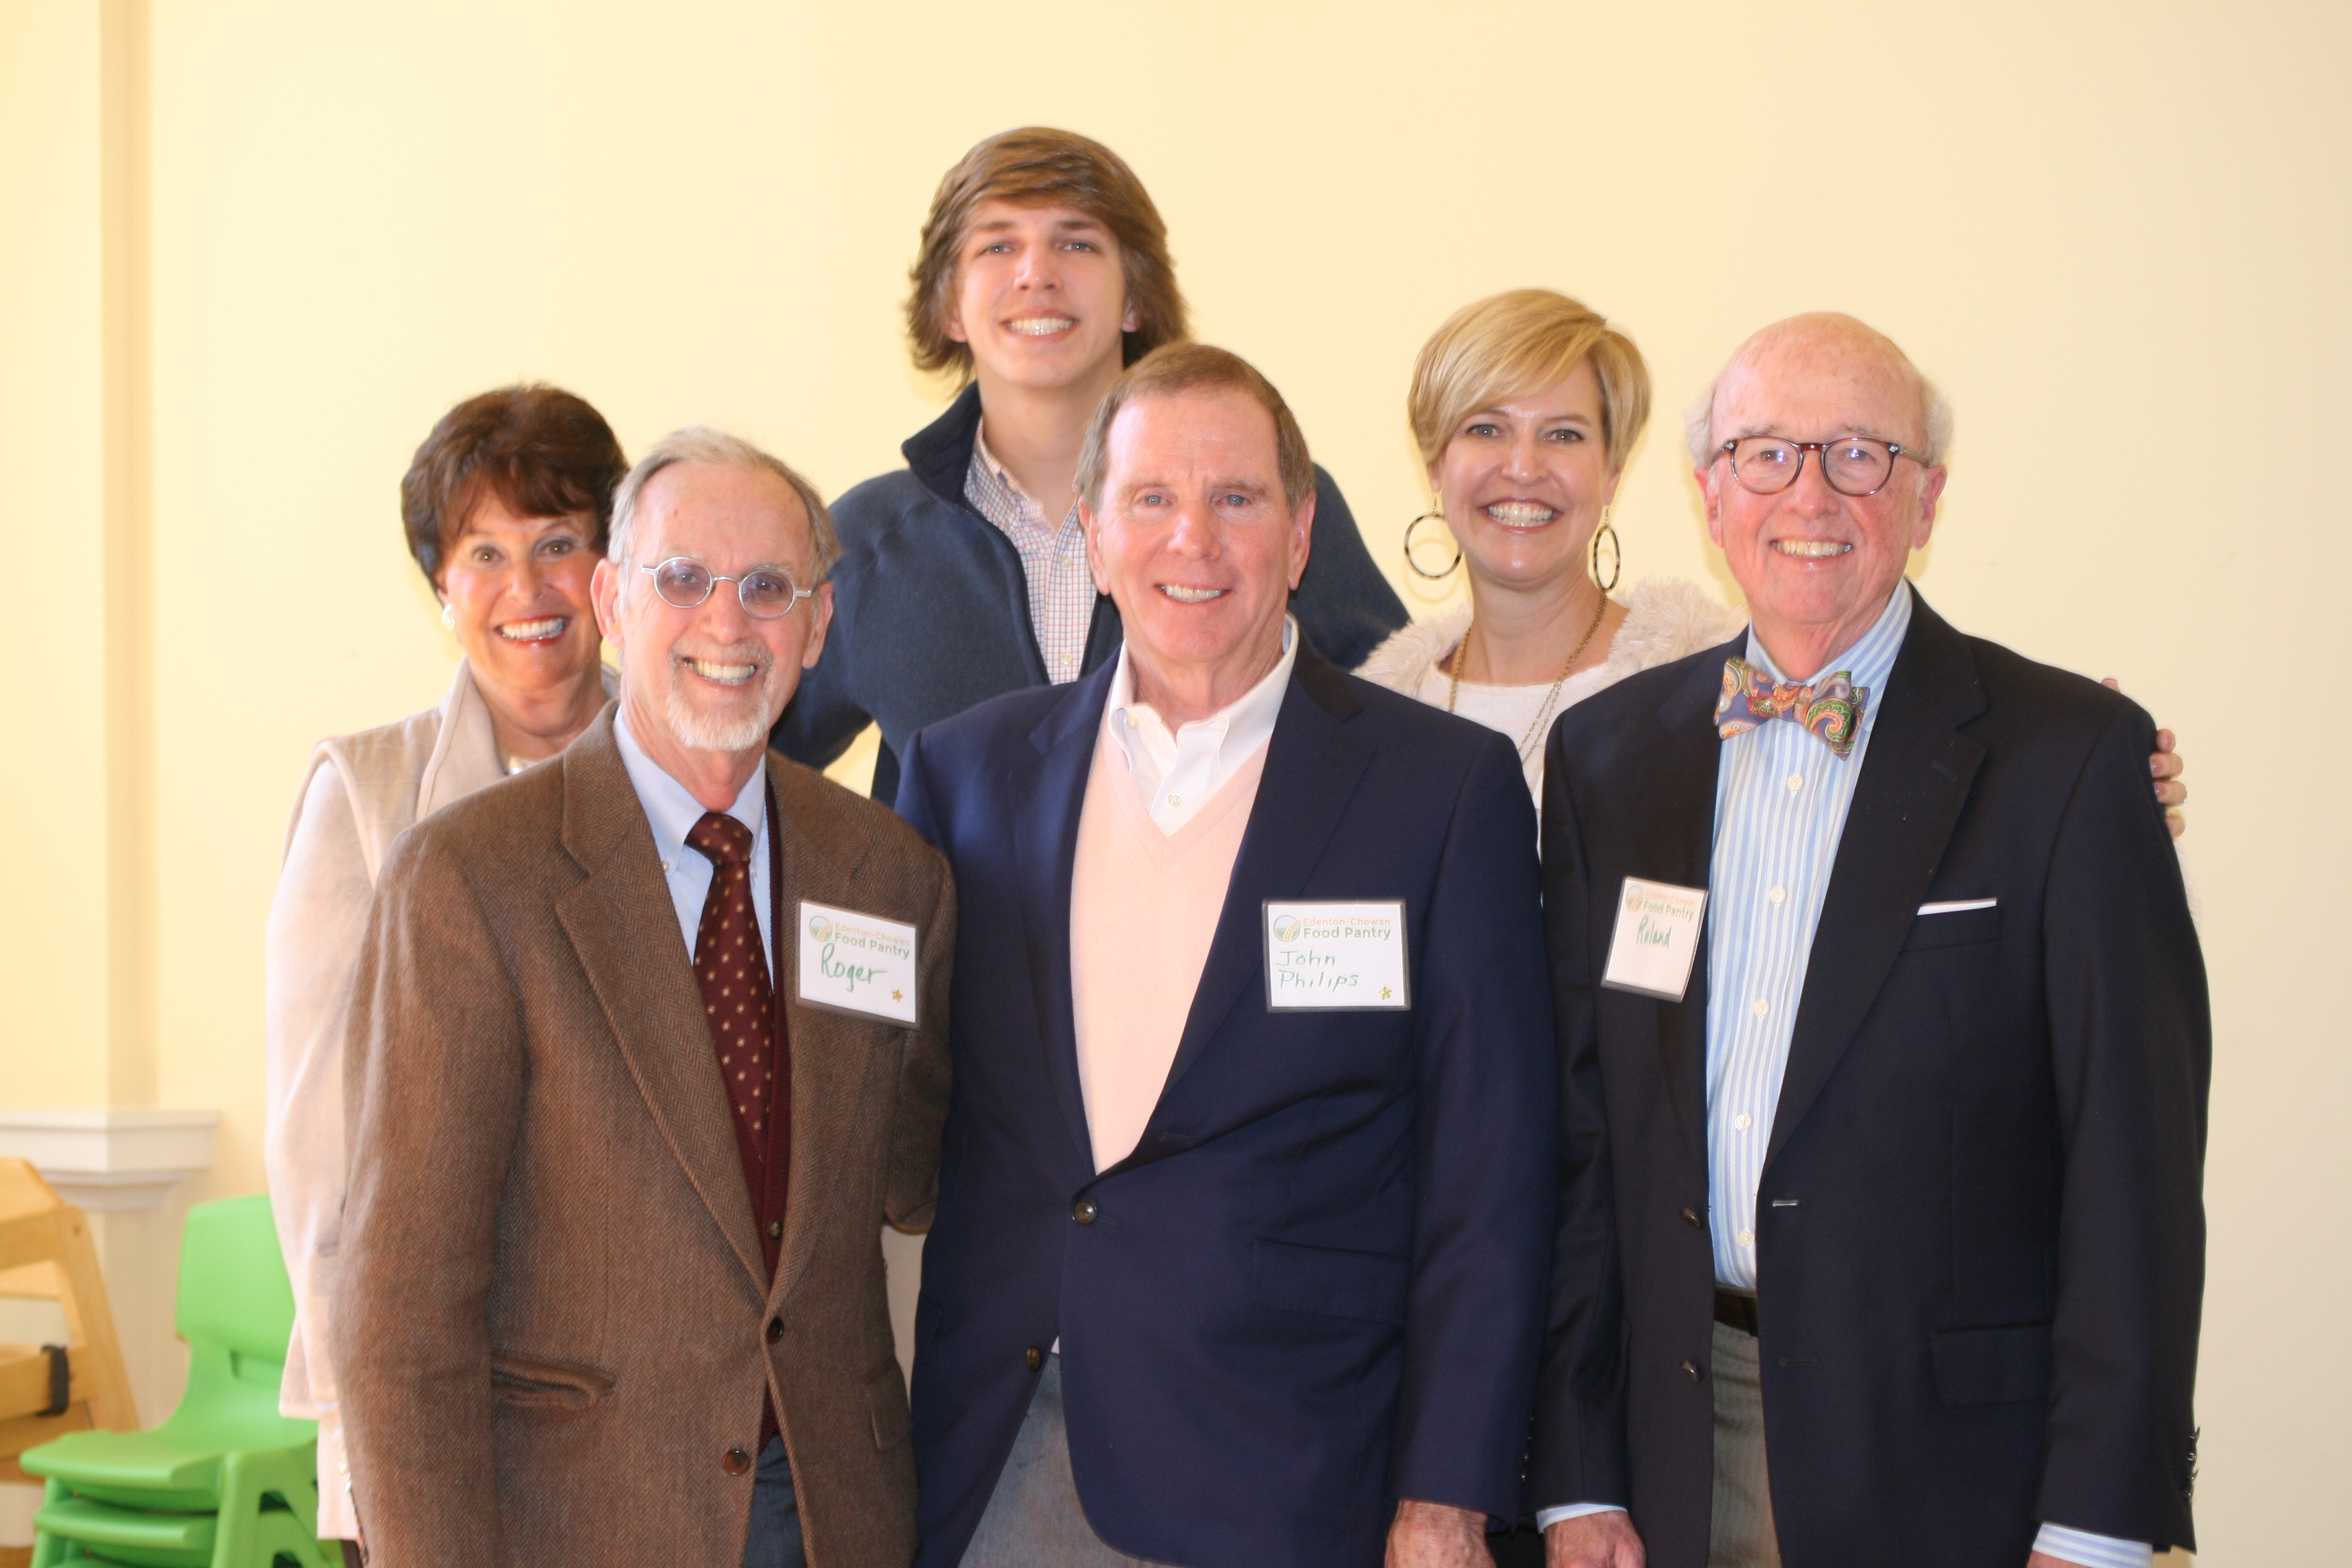 Pictured (left to right) are: First row: Coleman, Philips and Vaughan; Second row: Pam Phillips, Parker Swisher and Jill Swisher enjoying the community celebration culminating the successful completion of the 100 Grand Challenge.